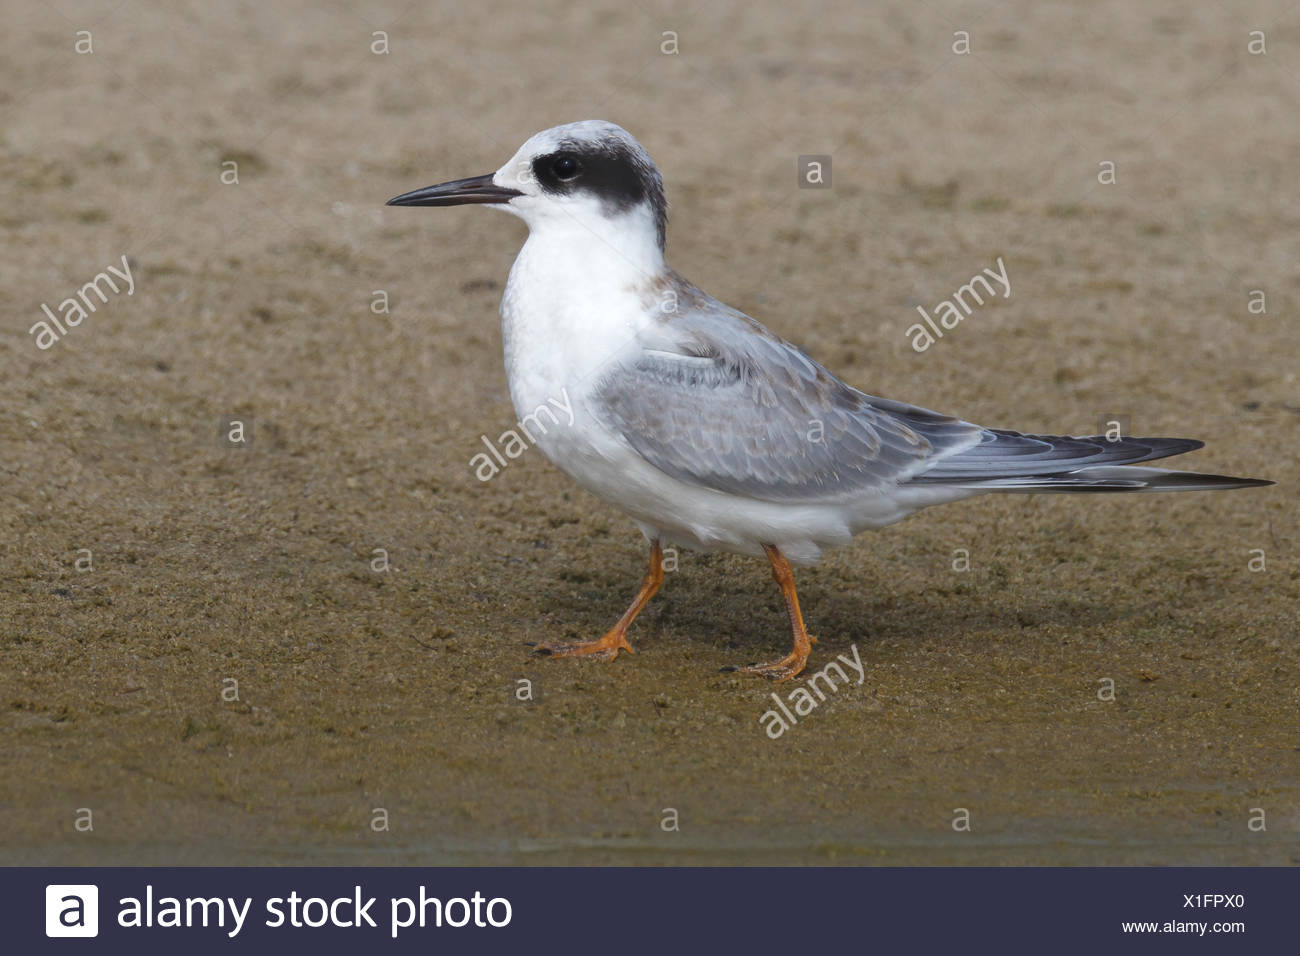 Forster's Tern - Sterna forsteriIn - transition from juvenile to 1st winter - Stock Image